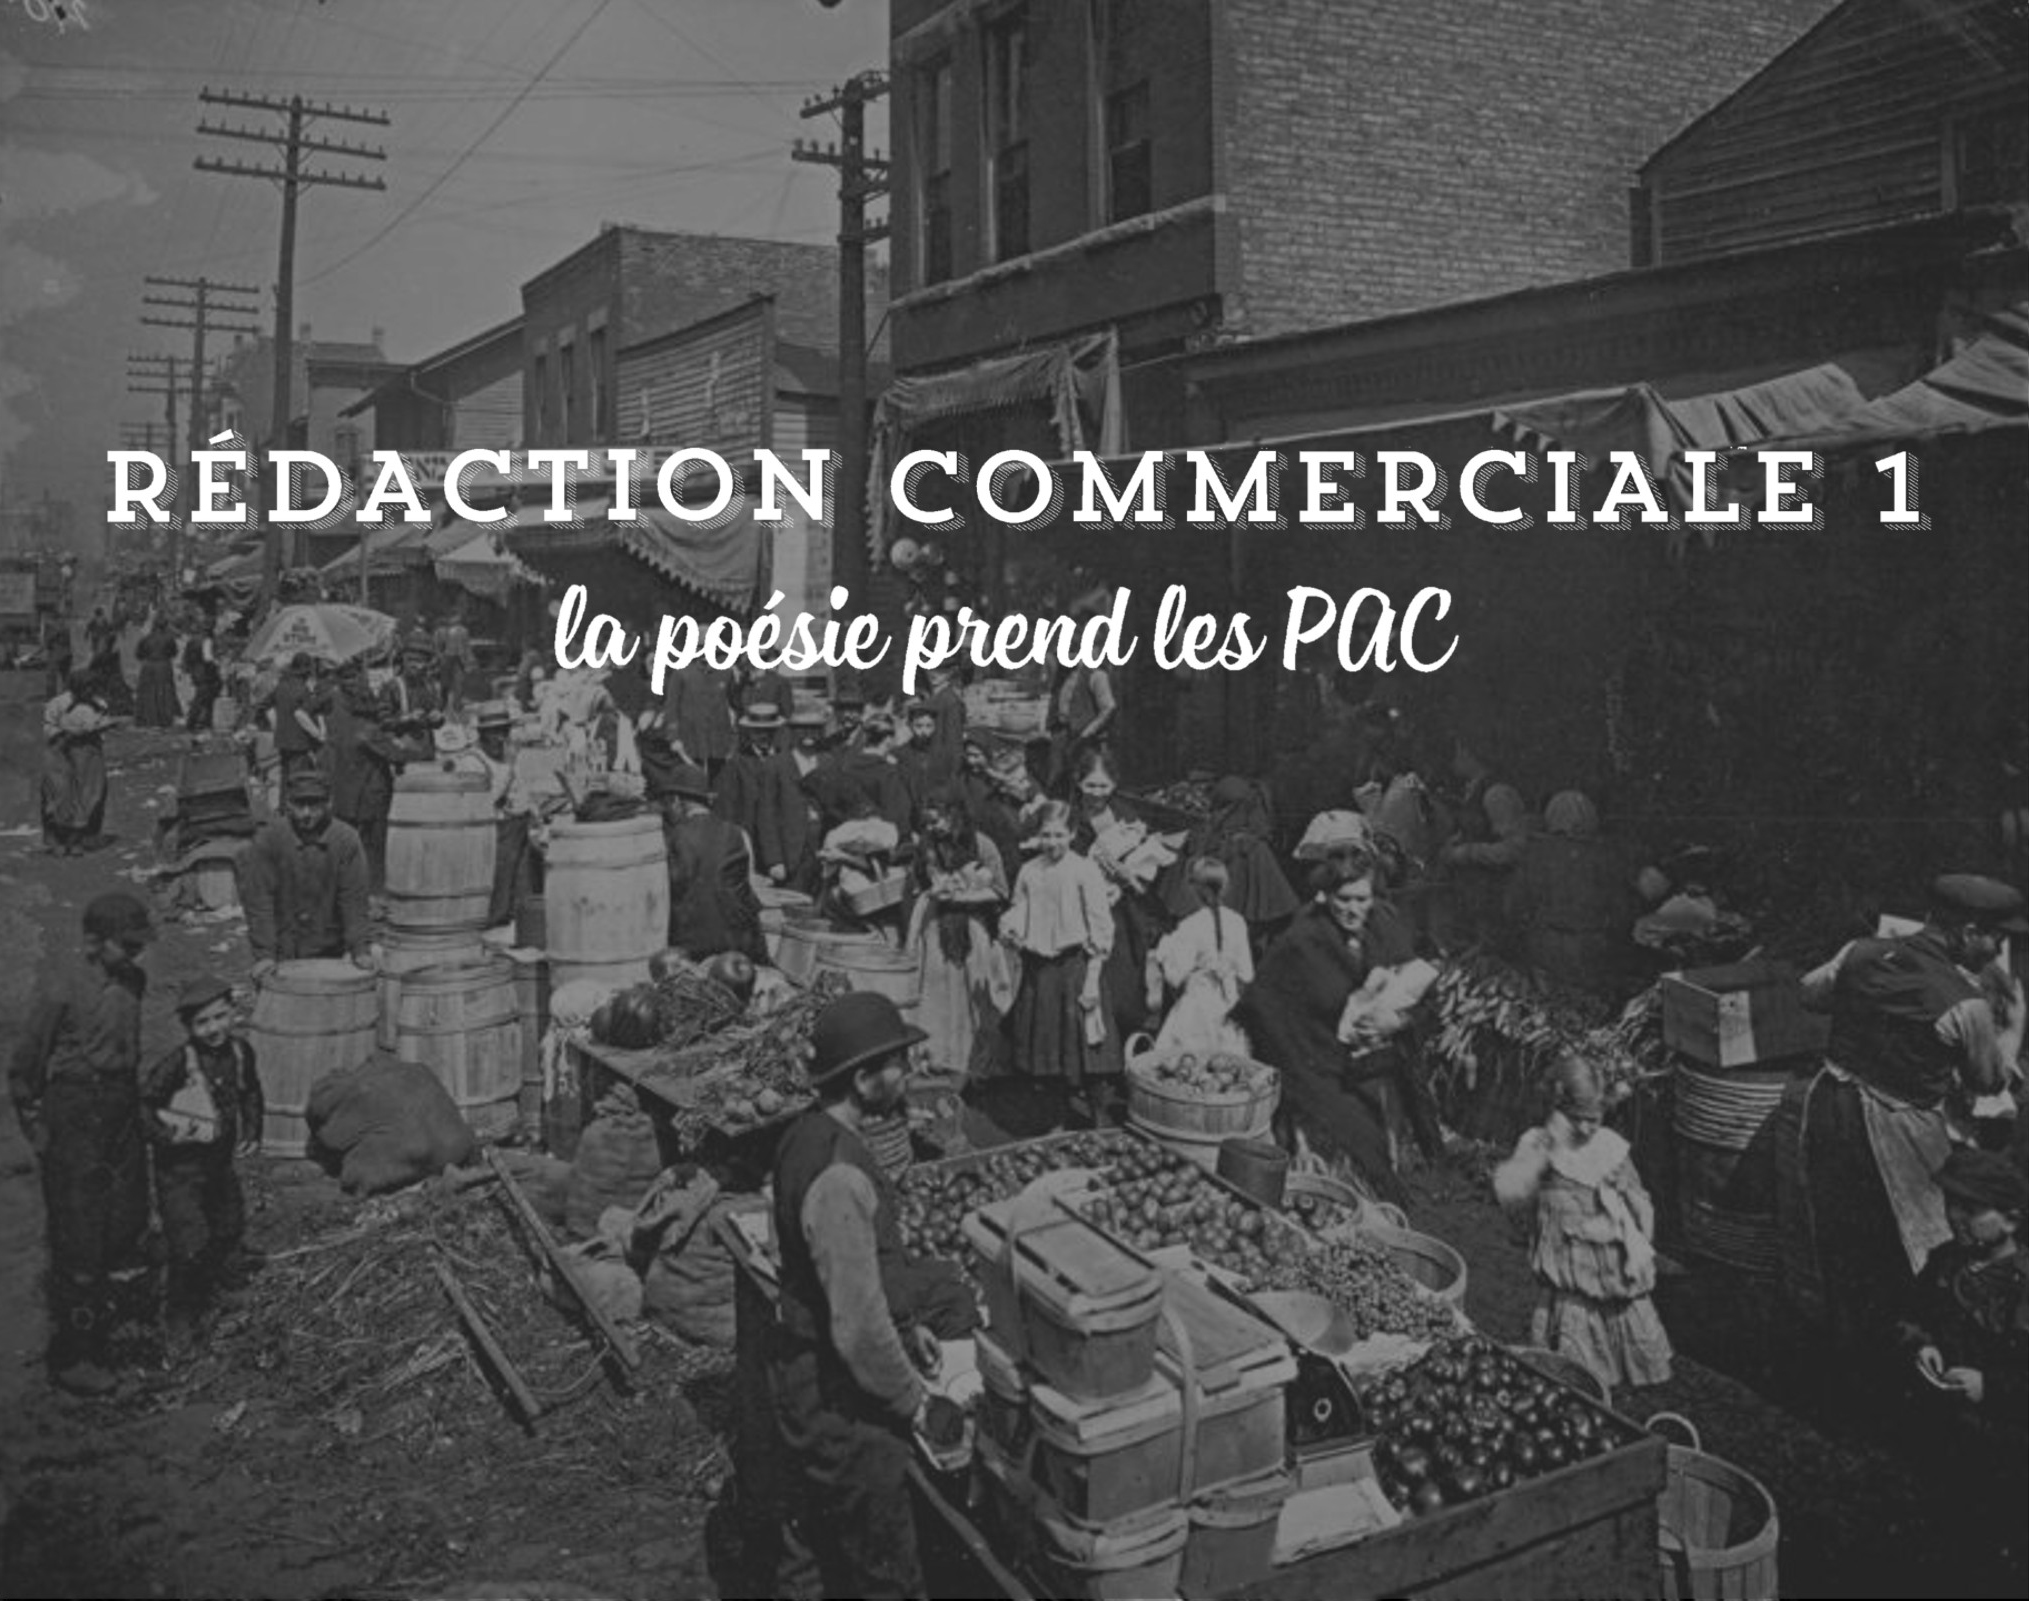 Rédaction commerciale 1